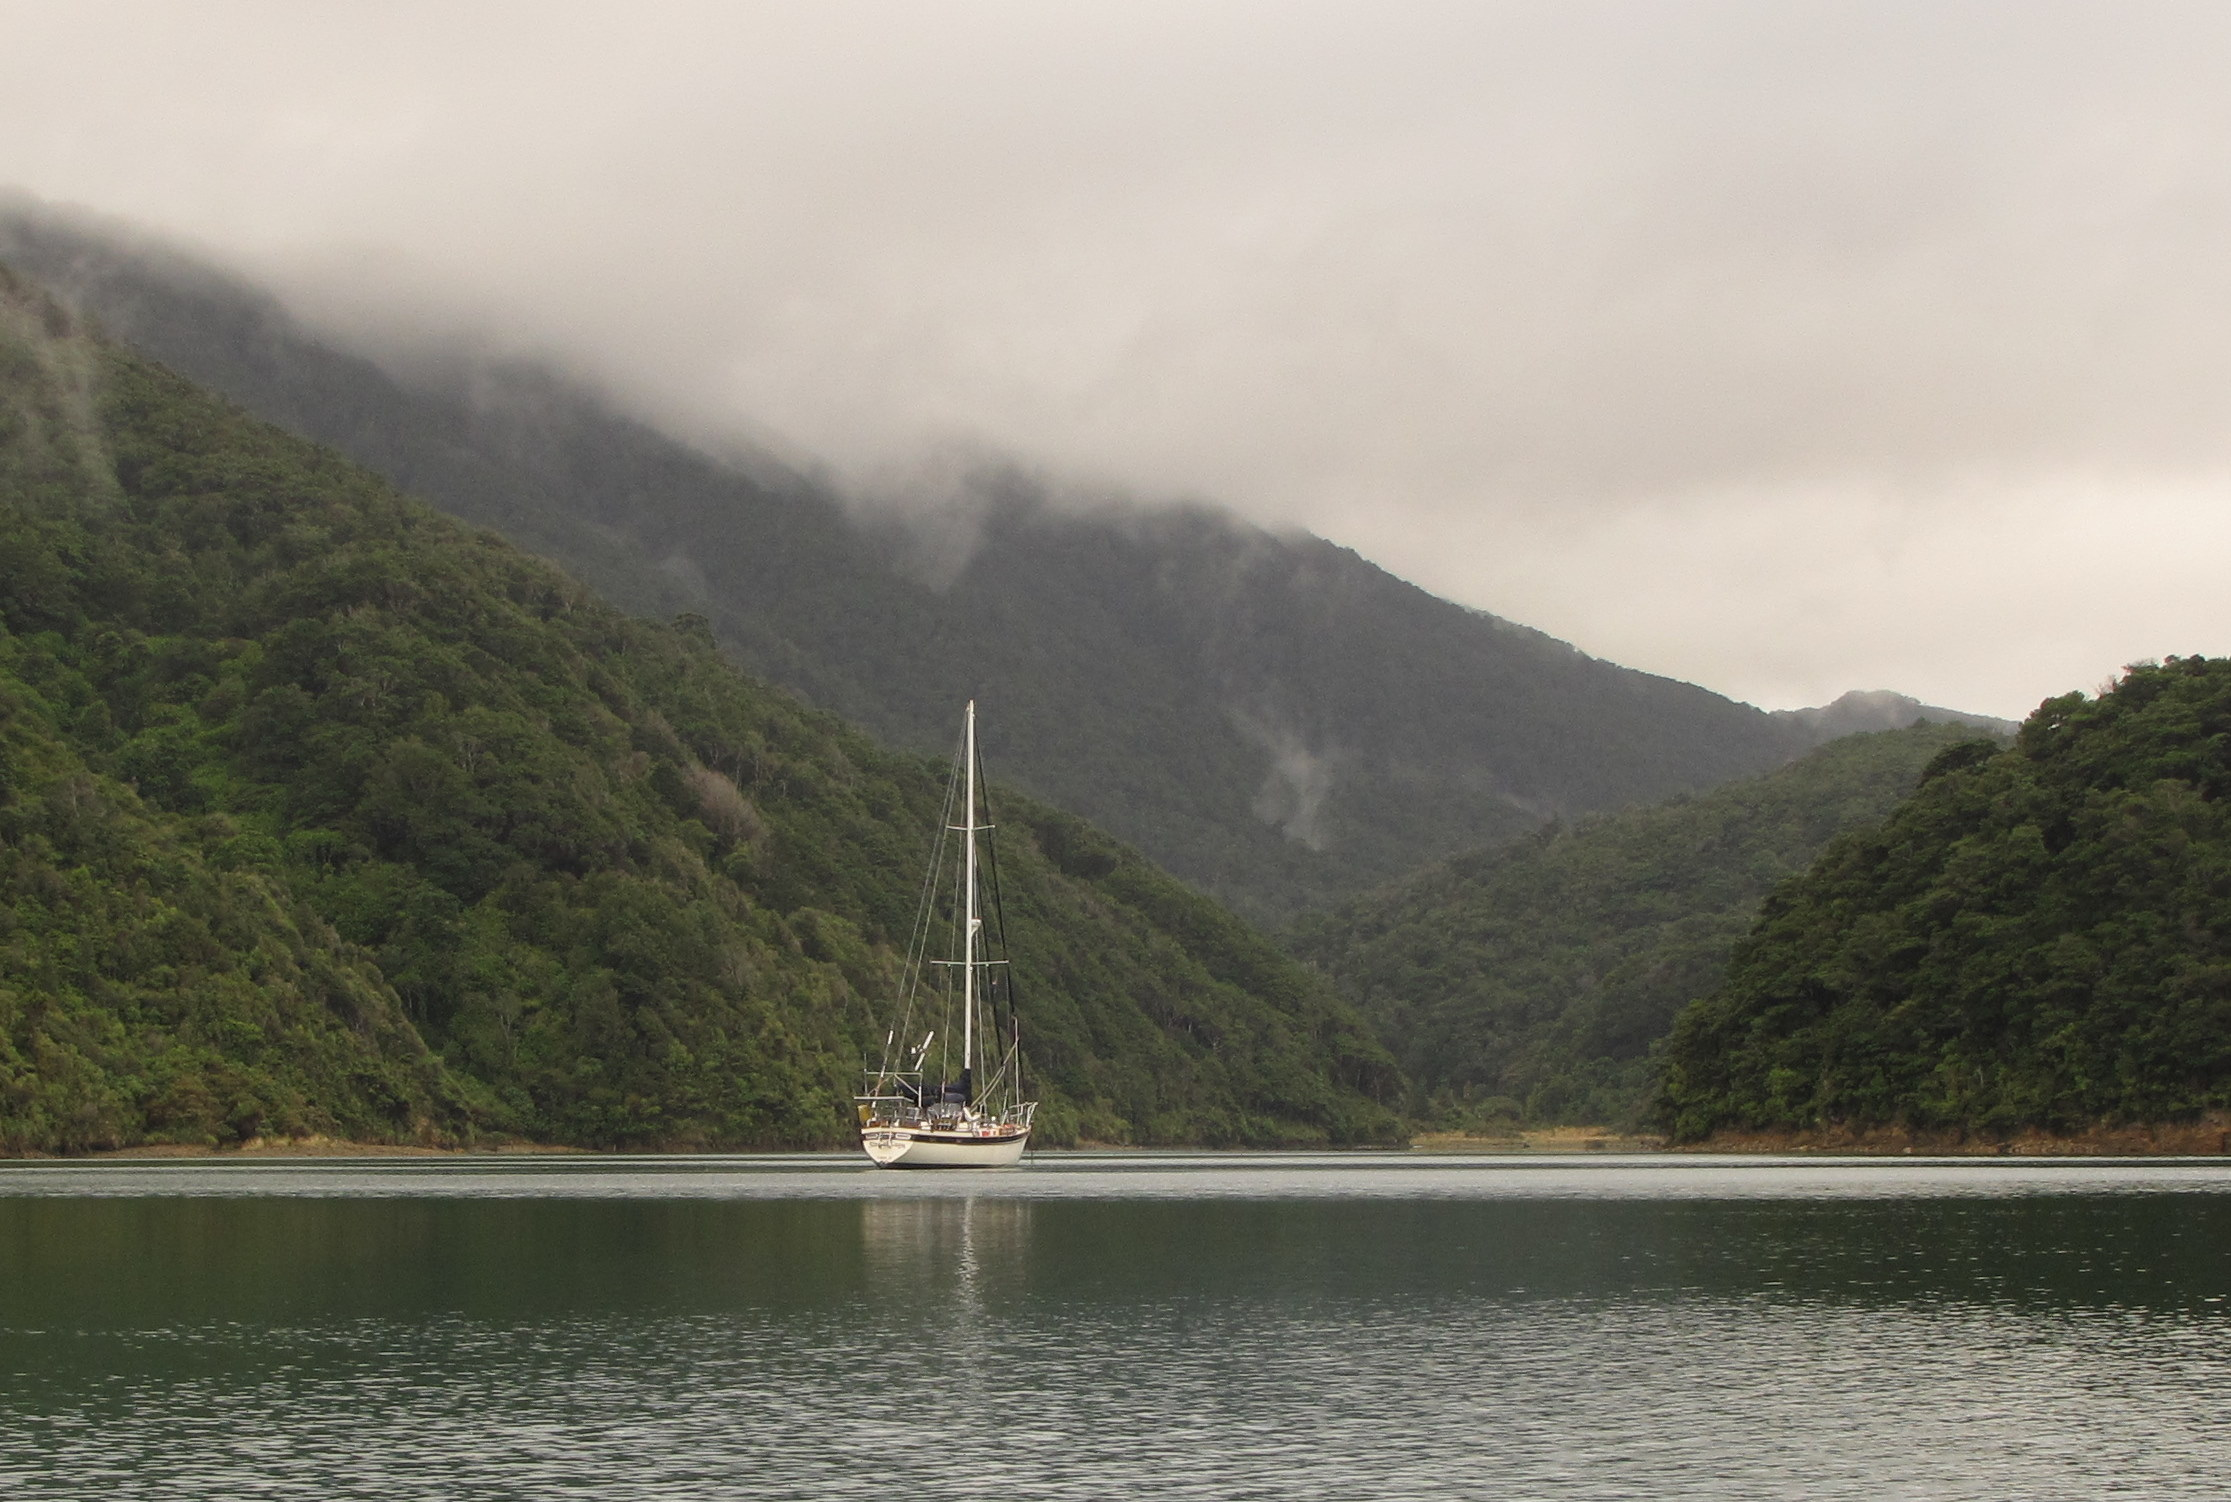 Early morning mist in an isolated, protected anchorage off D'Urville Island in the Marlborough Sounds.